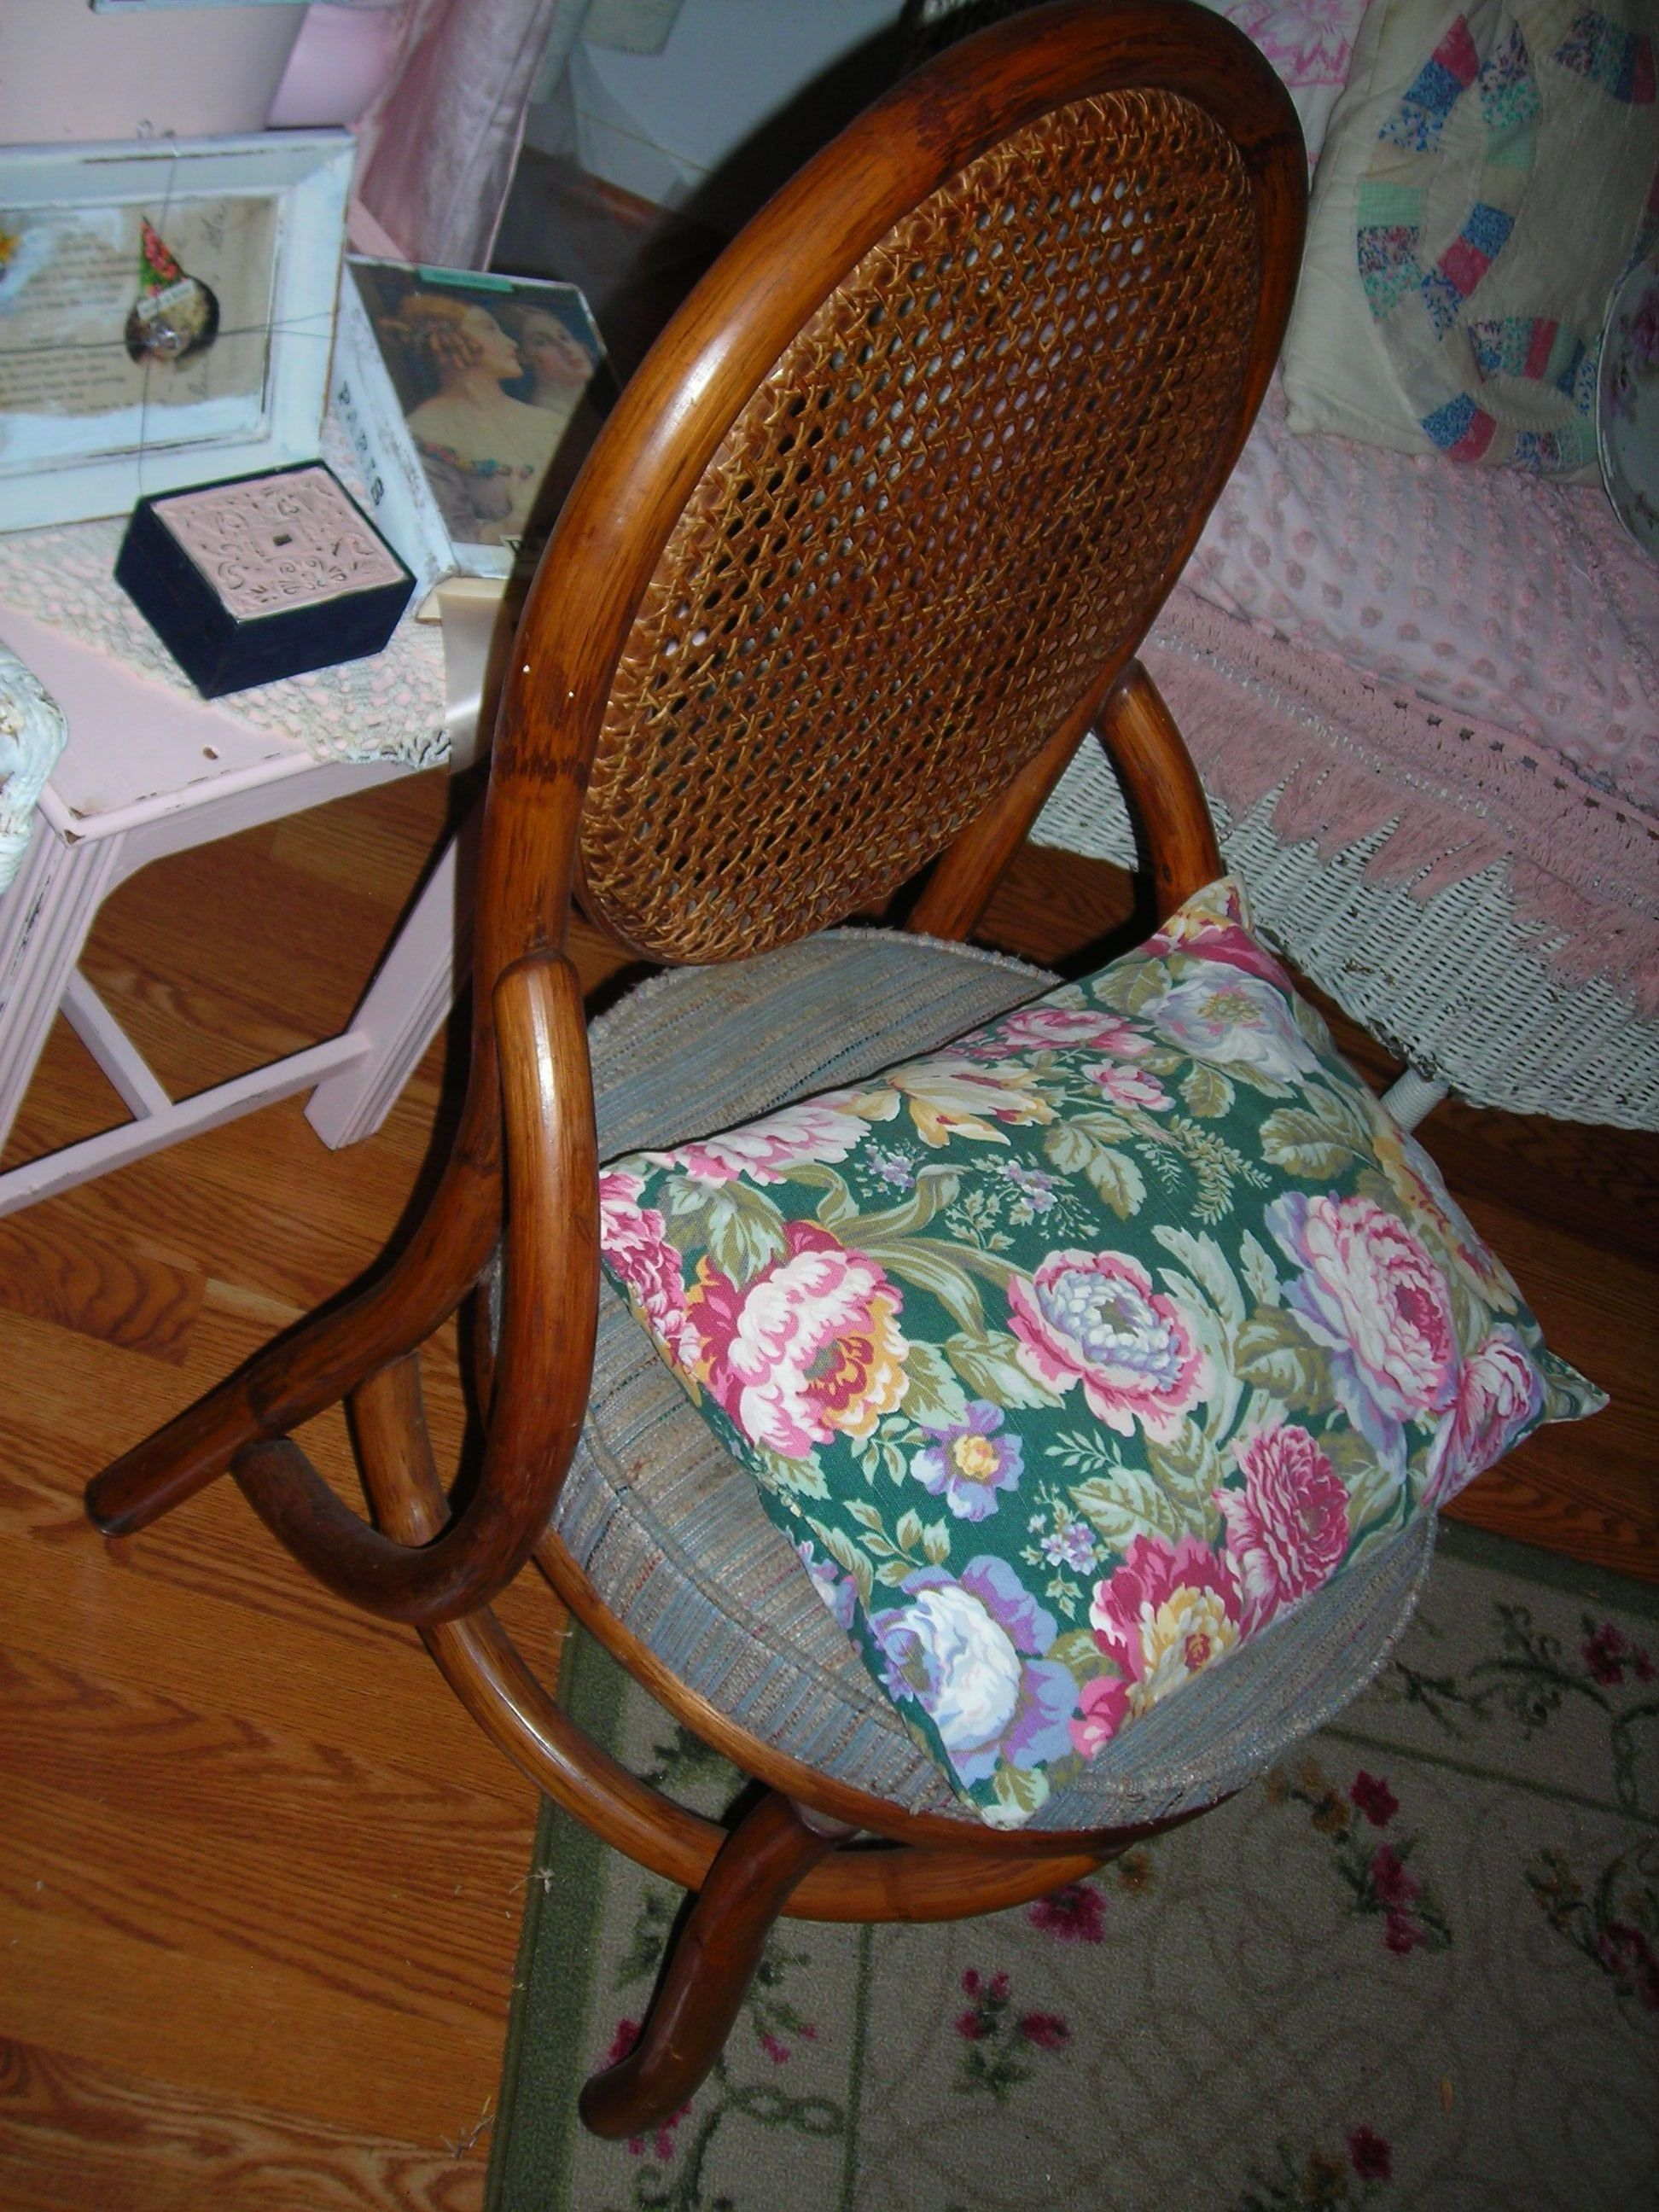 great little chair i plan to paint. 2 bucks. sigh! the little rose pillow 50cents!!